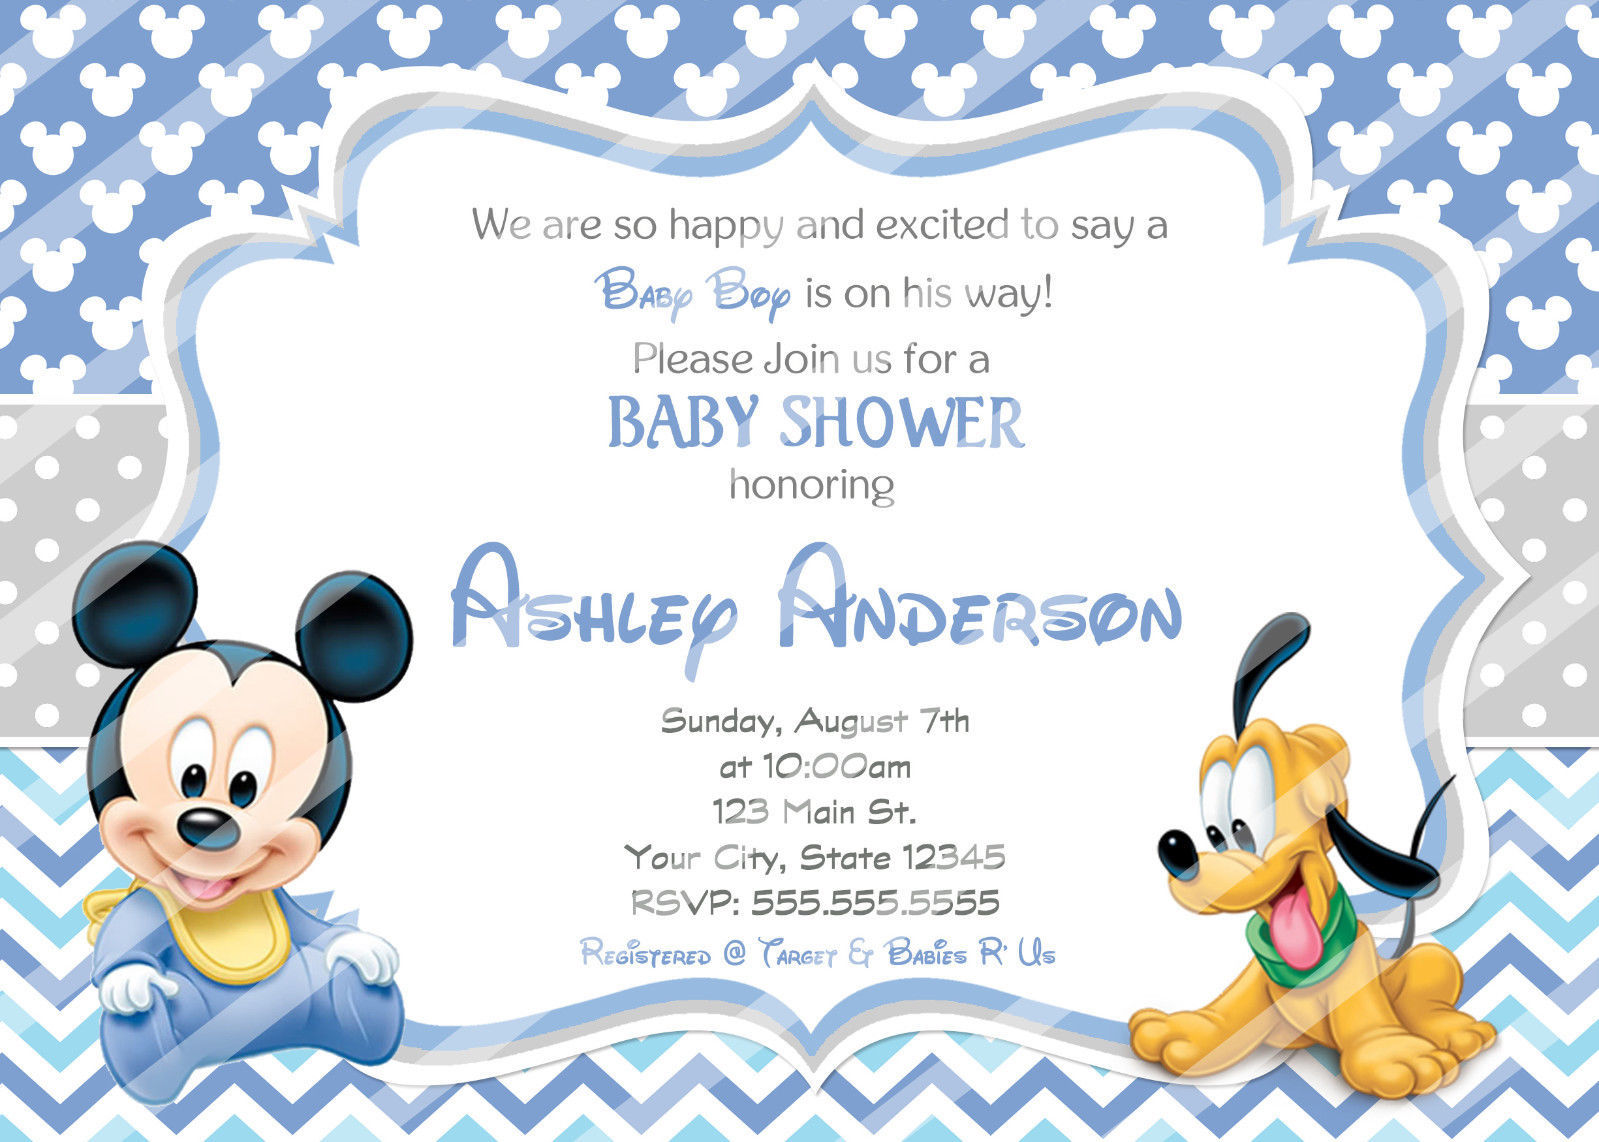 Baby mickey mouse baby shower invitations and 50 similar items s l1600 s l1600 baby mickey mouse baby shower invitations printable invitations chevron free shipping filmwisefo